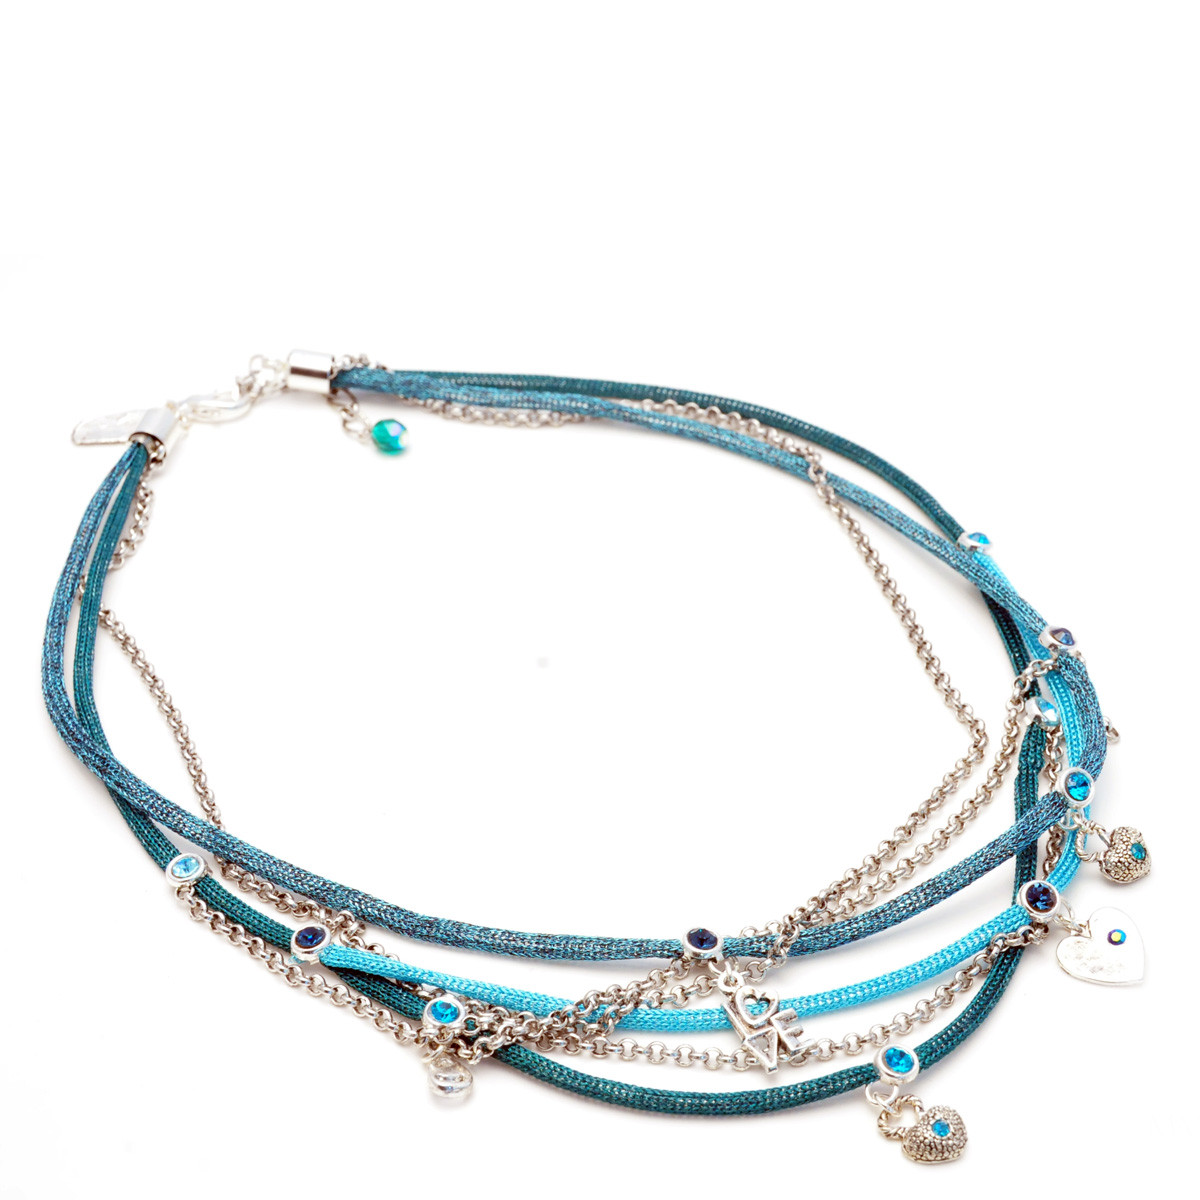 Turquoise True Love Round Motion necklace from Anat Jewelry